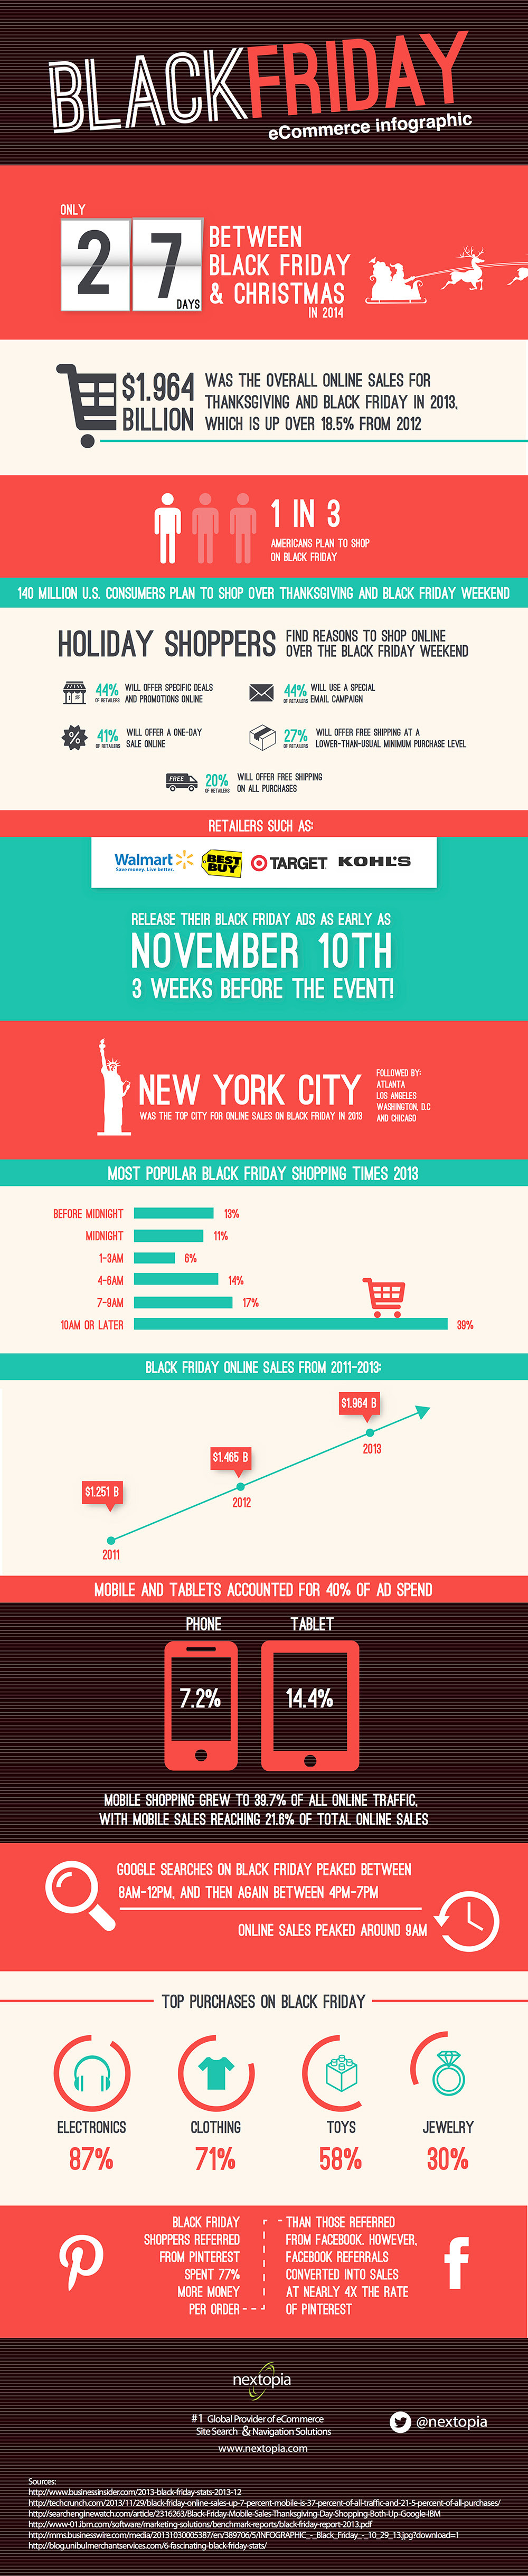 infographic: Black Friday eCommerce